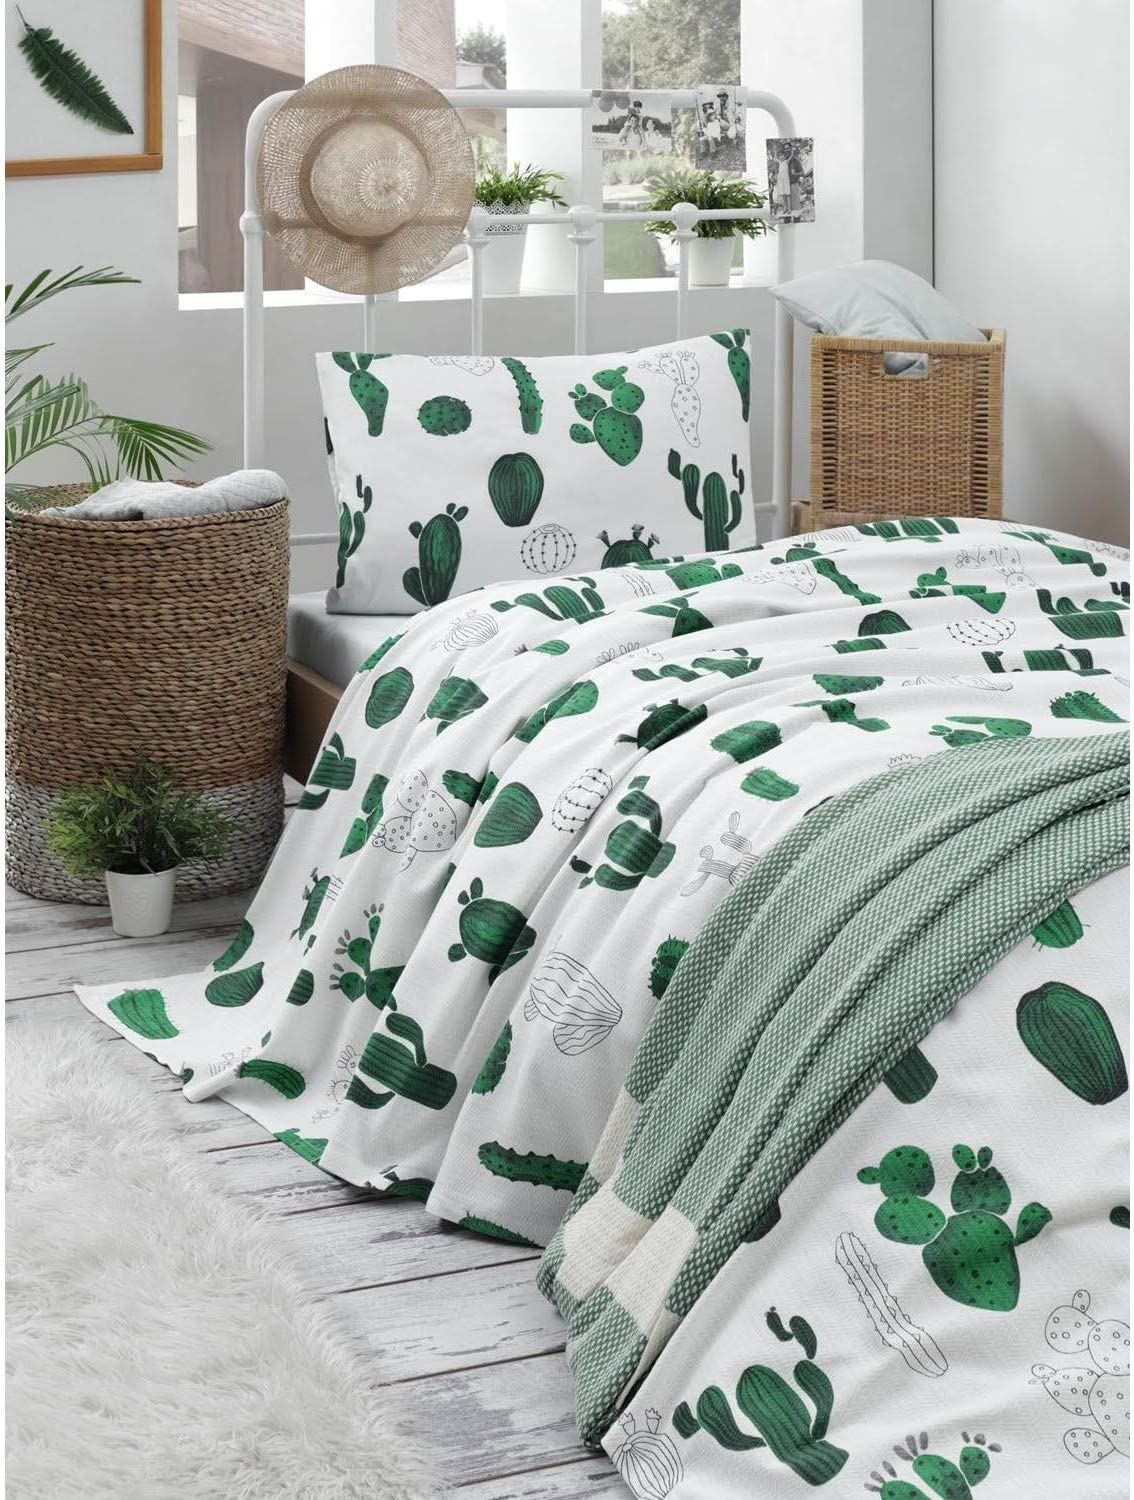 OZINCI Cactus Bedding Bedspread 10 Set free shipping Pique Coverlet Opening large release sale